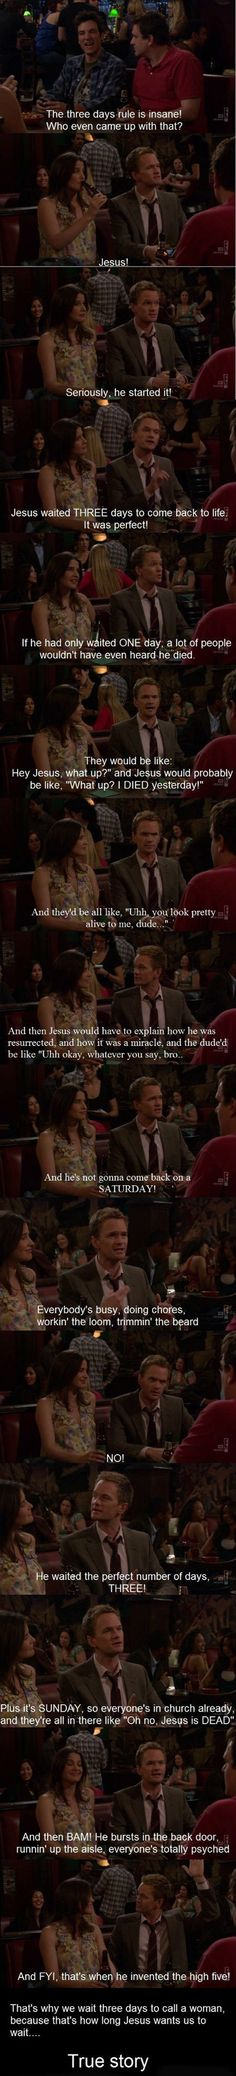 hahahaha BEST explanation ever. I about died laughing when I watched this episode!